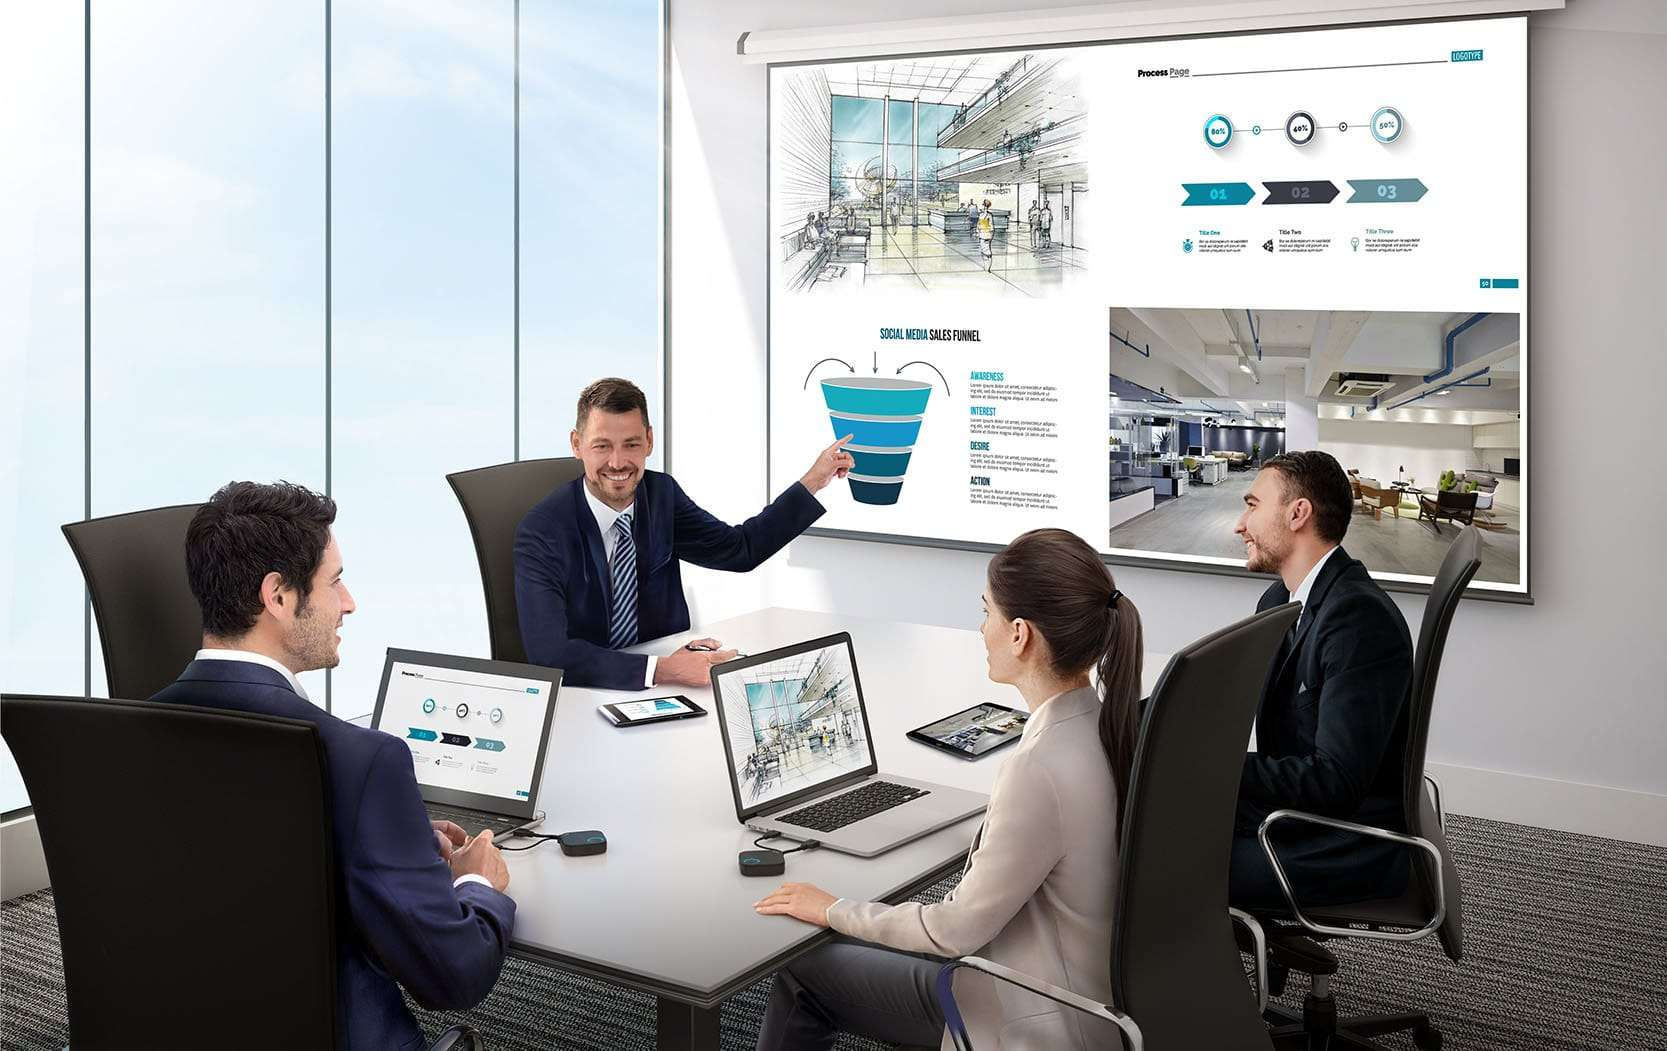 BenQ Wireless Presentation Solution Enables Plug-and-Play Collaboration for Mobile Devices and Interactive Displays